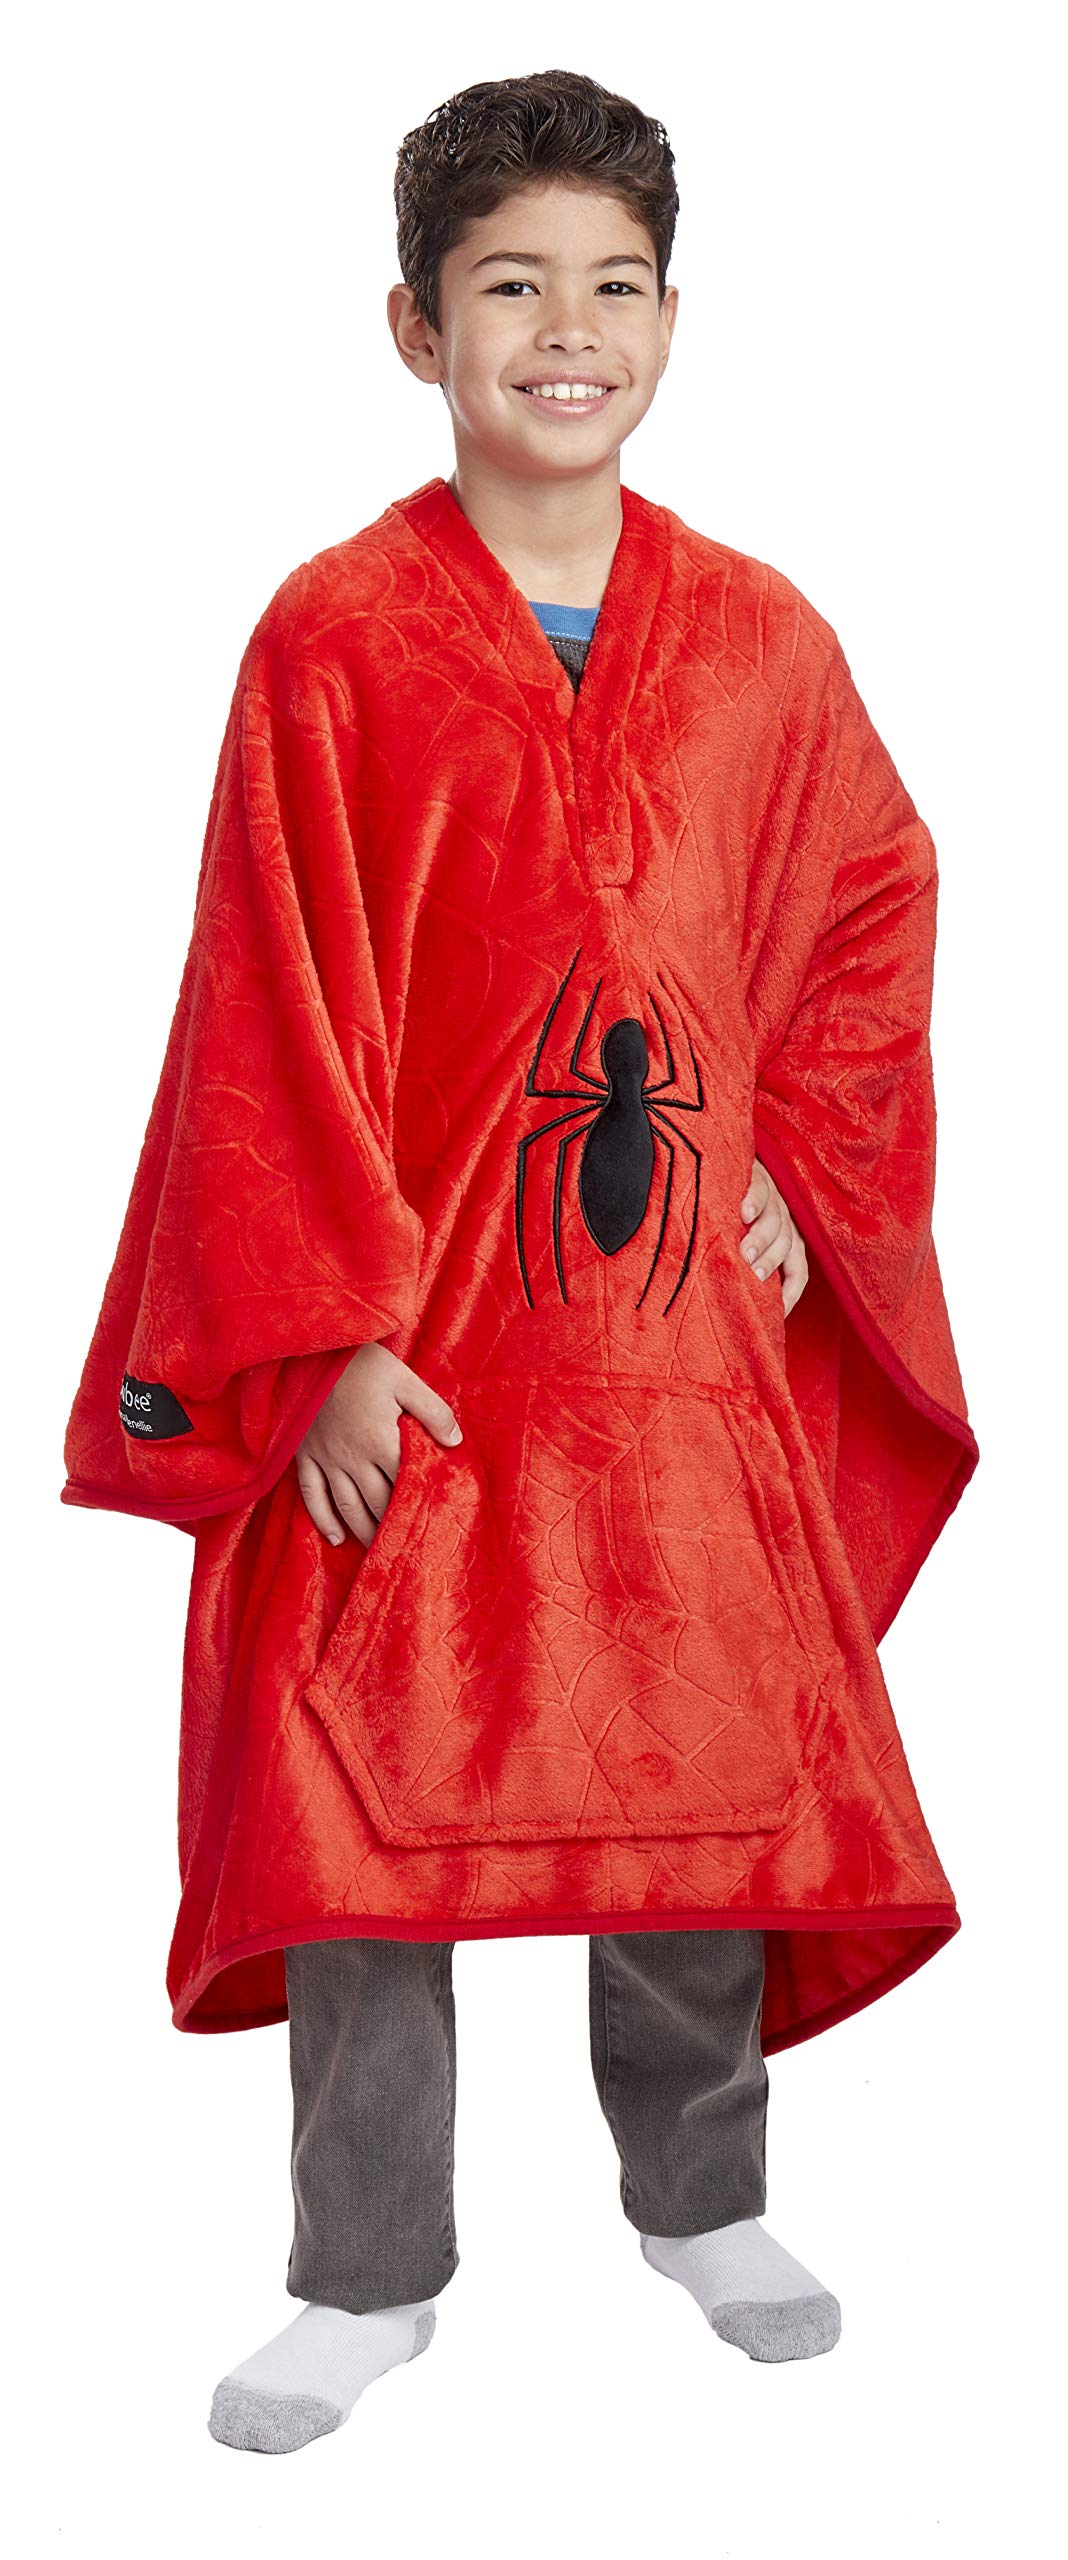 Jay Franco Marvel Spiderman Spider Web Throwbee - 2-in-1 Wearable Kids Plush Throw Blanket Poncho - Fade Resistant Polyester, 50'' x 60'' - (Offical Marvel Product) by Jay Franco